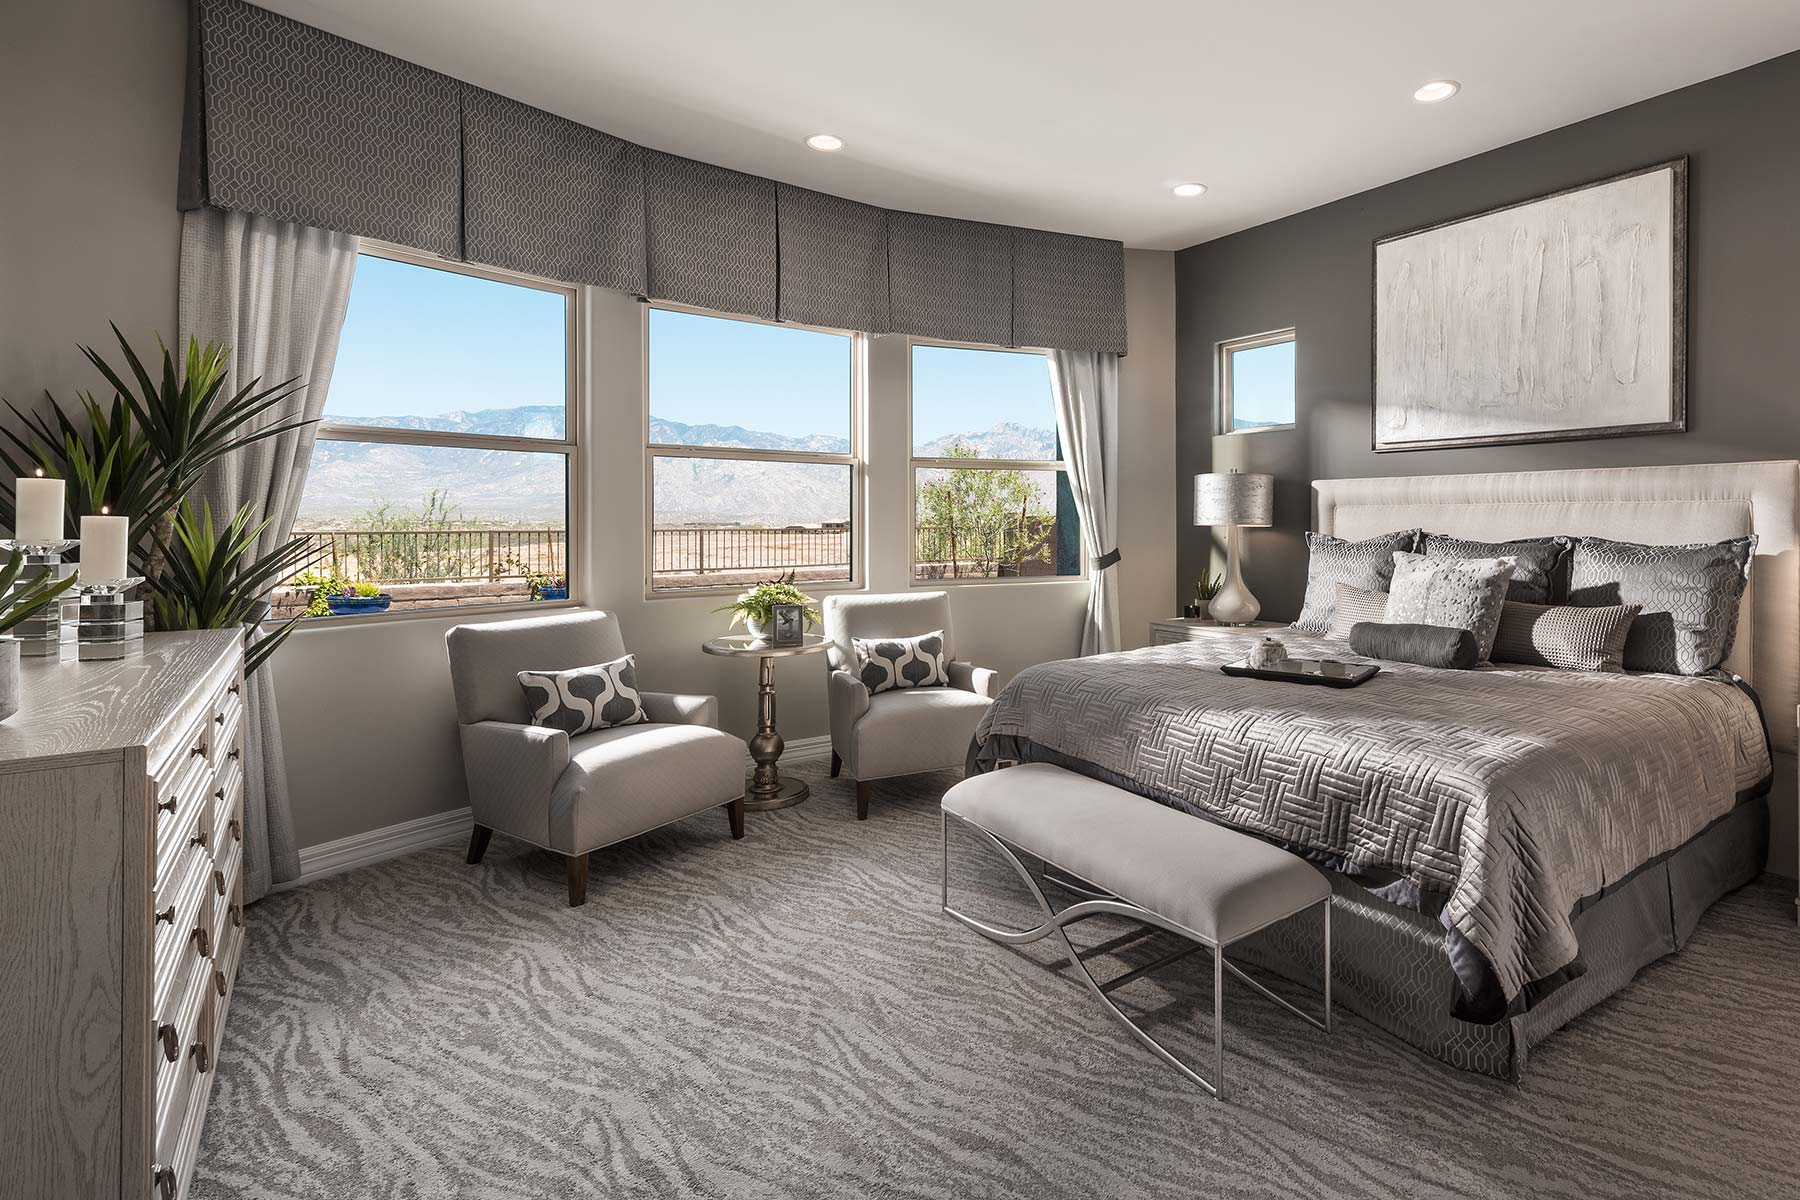 Patina Plan Bedroom at Alterra at Vistoso Trails in Oro Valley Arizona by Mattamy Homes